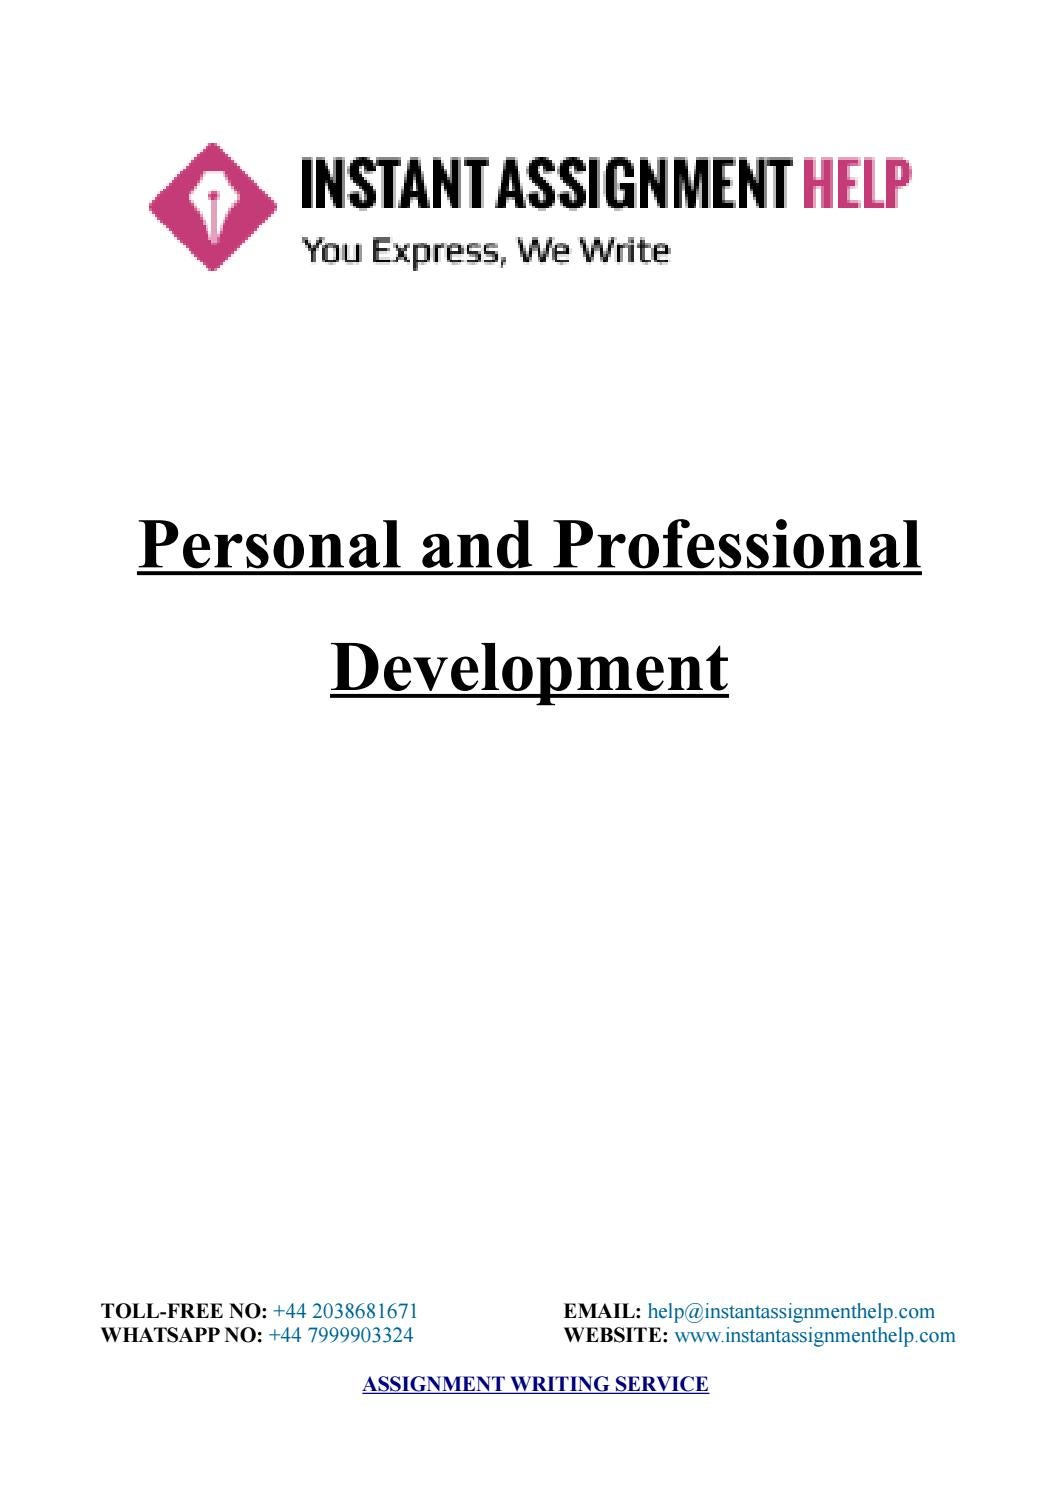 assignment sample personal and professional development by  assignment sample personal and professional development by instant assignment help issuu